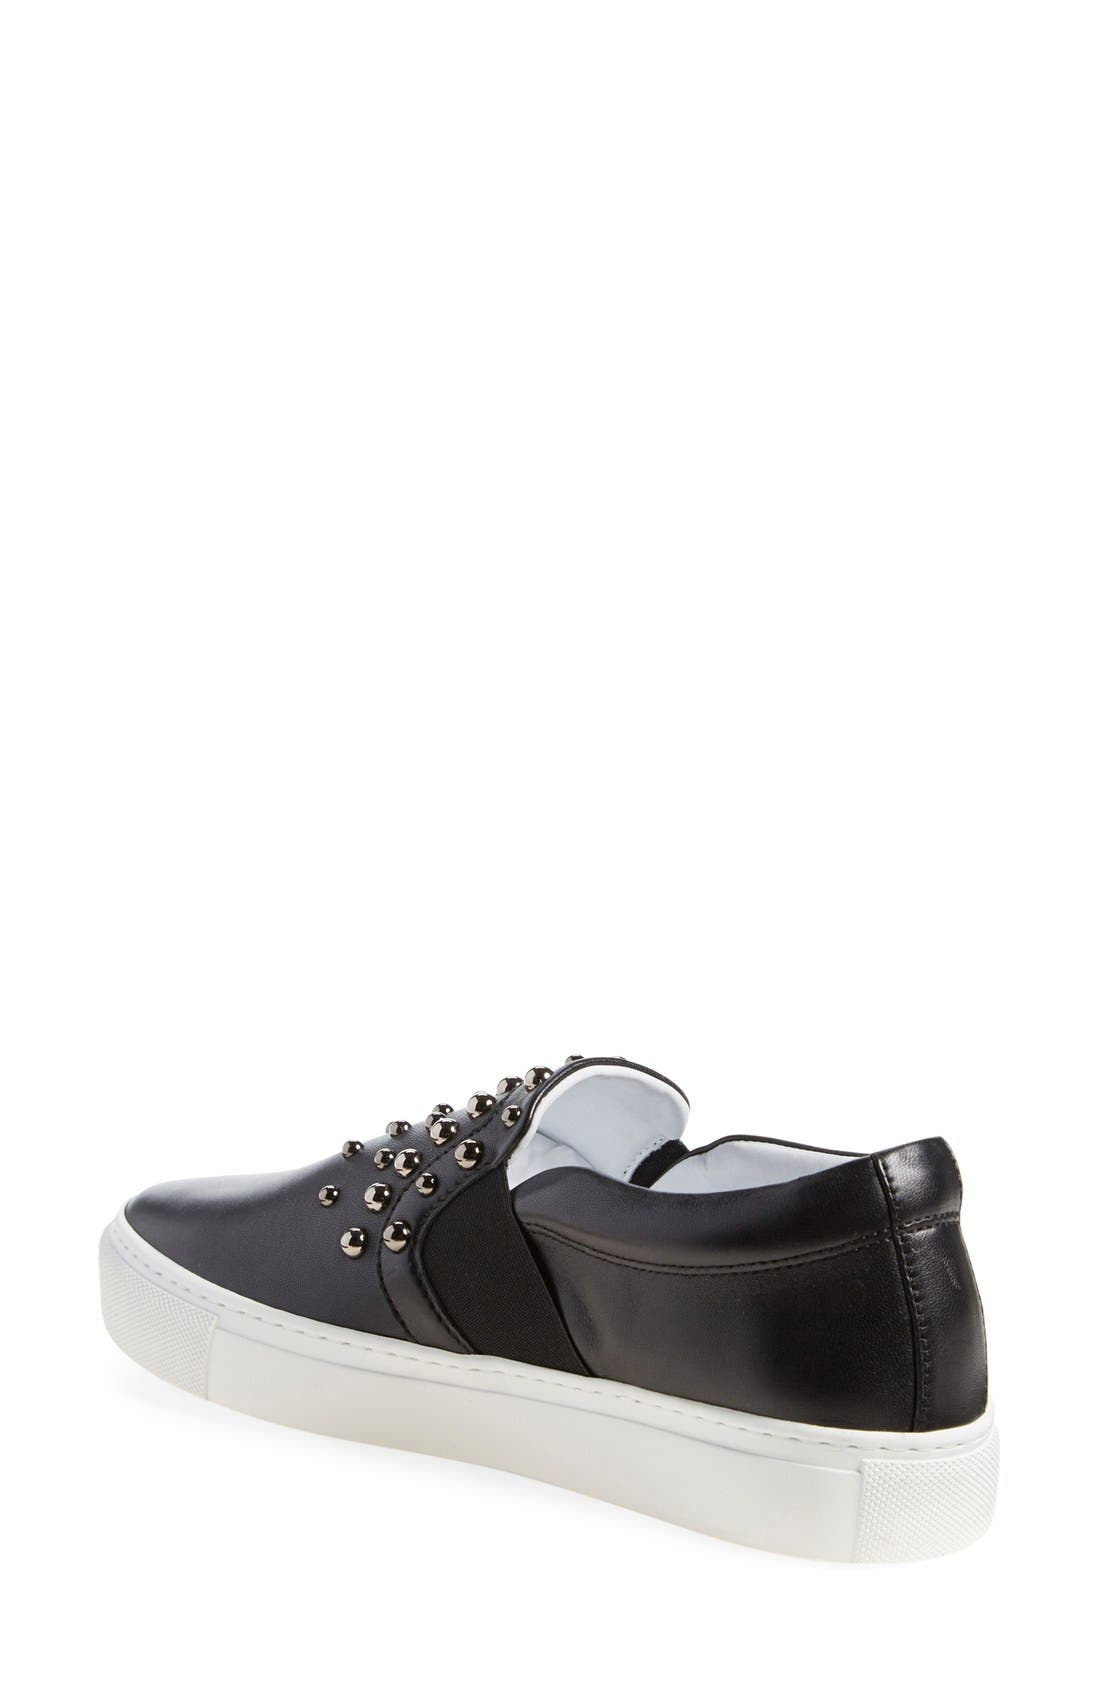 Alternate Image 2  - Lanvin Slip-On Skate Sneaker (Women)